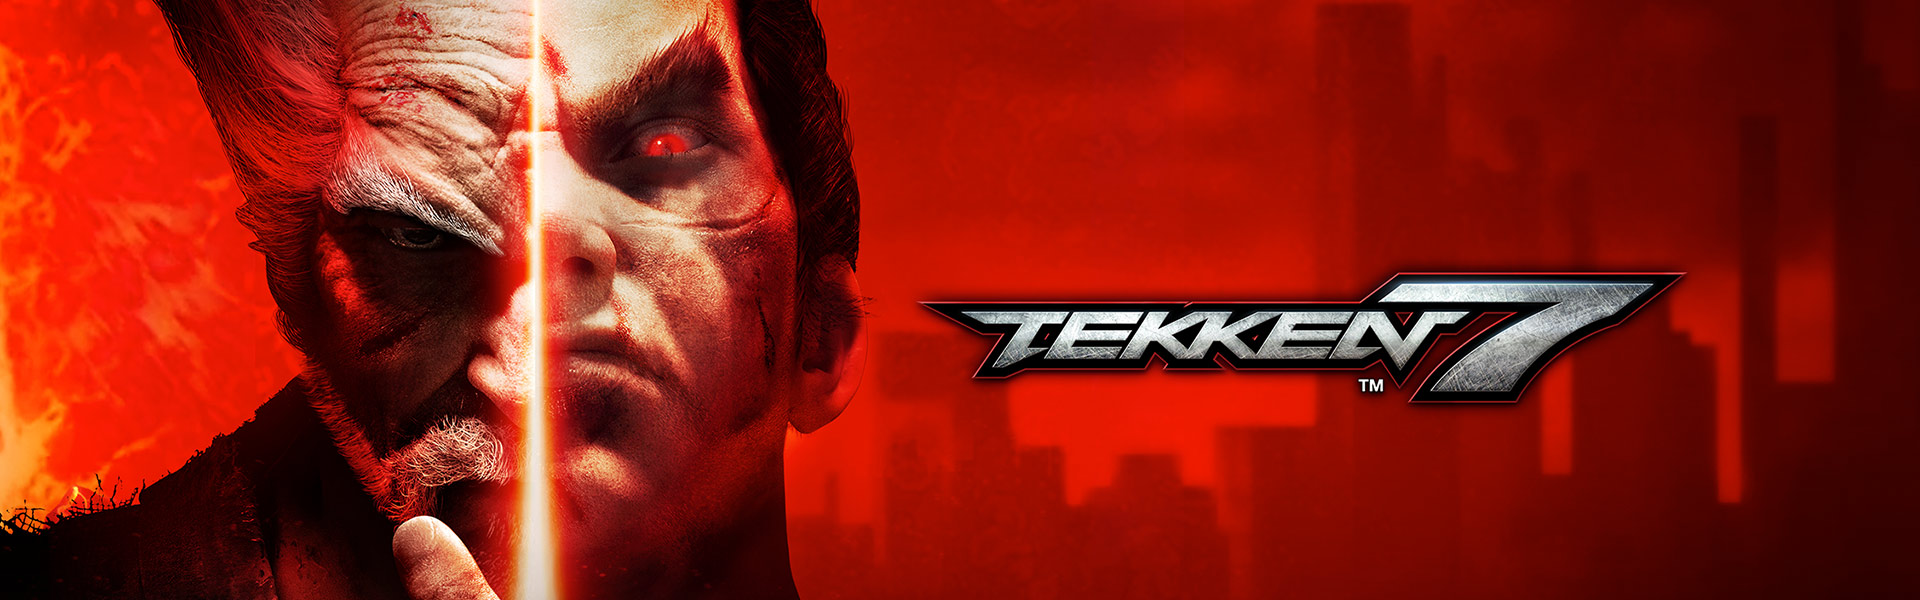 Tekken 7 - Gamepersonages